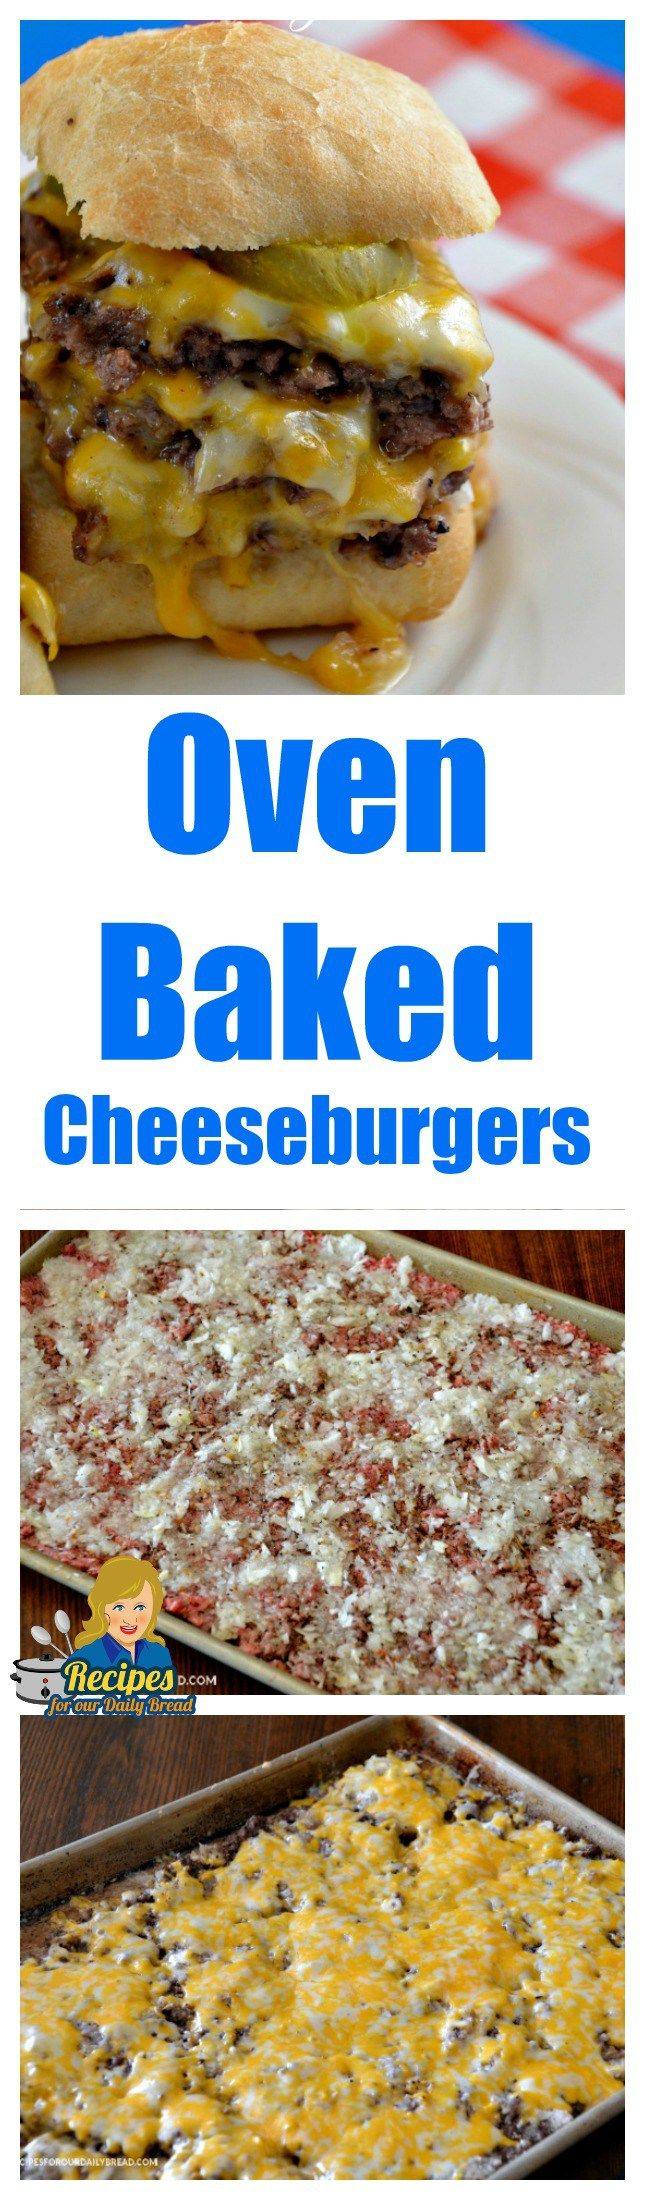 Cheeseburger Sliders oven baked